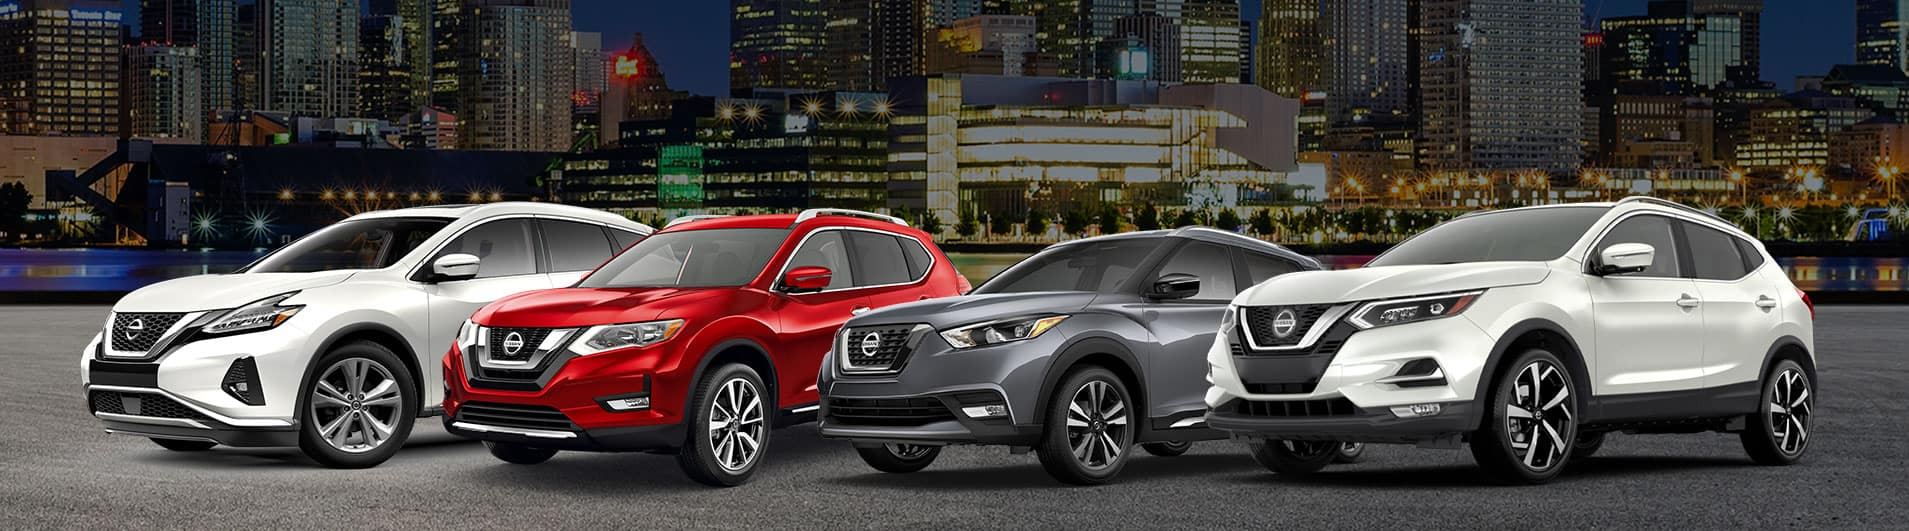 2021 and 2020 Nissan vehicles at Midway Nissan